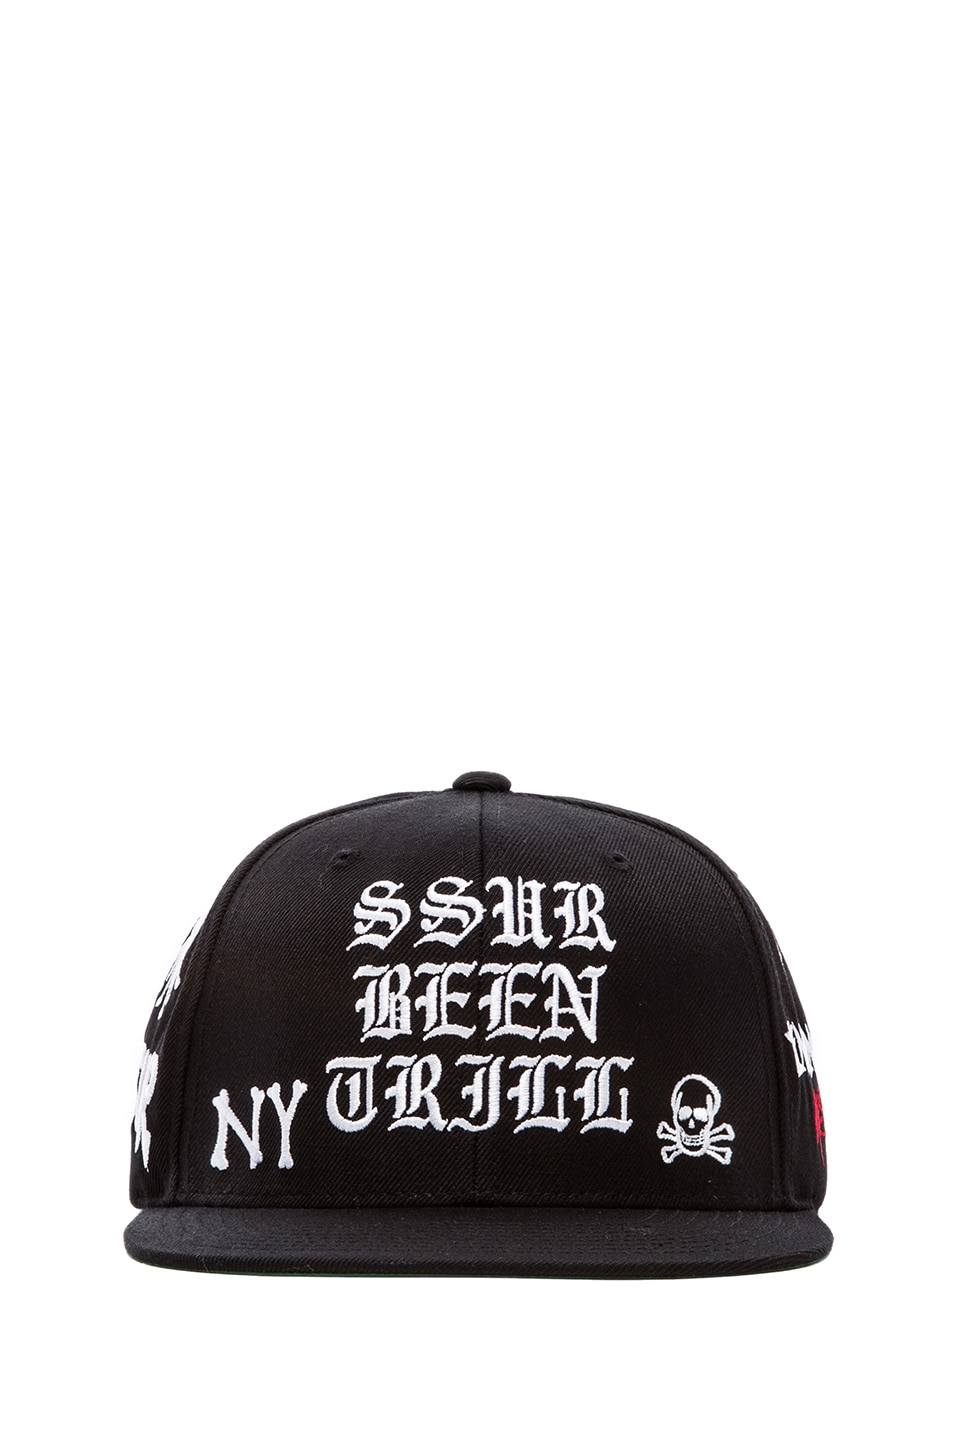 SSUR Been Trill All over Snapback in Black & White